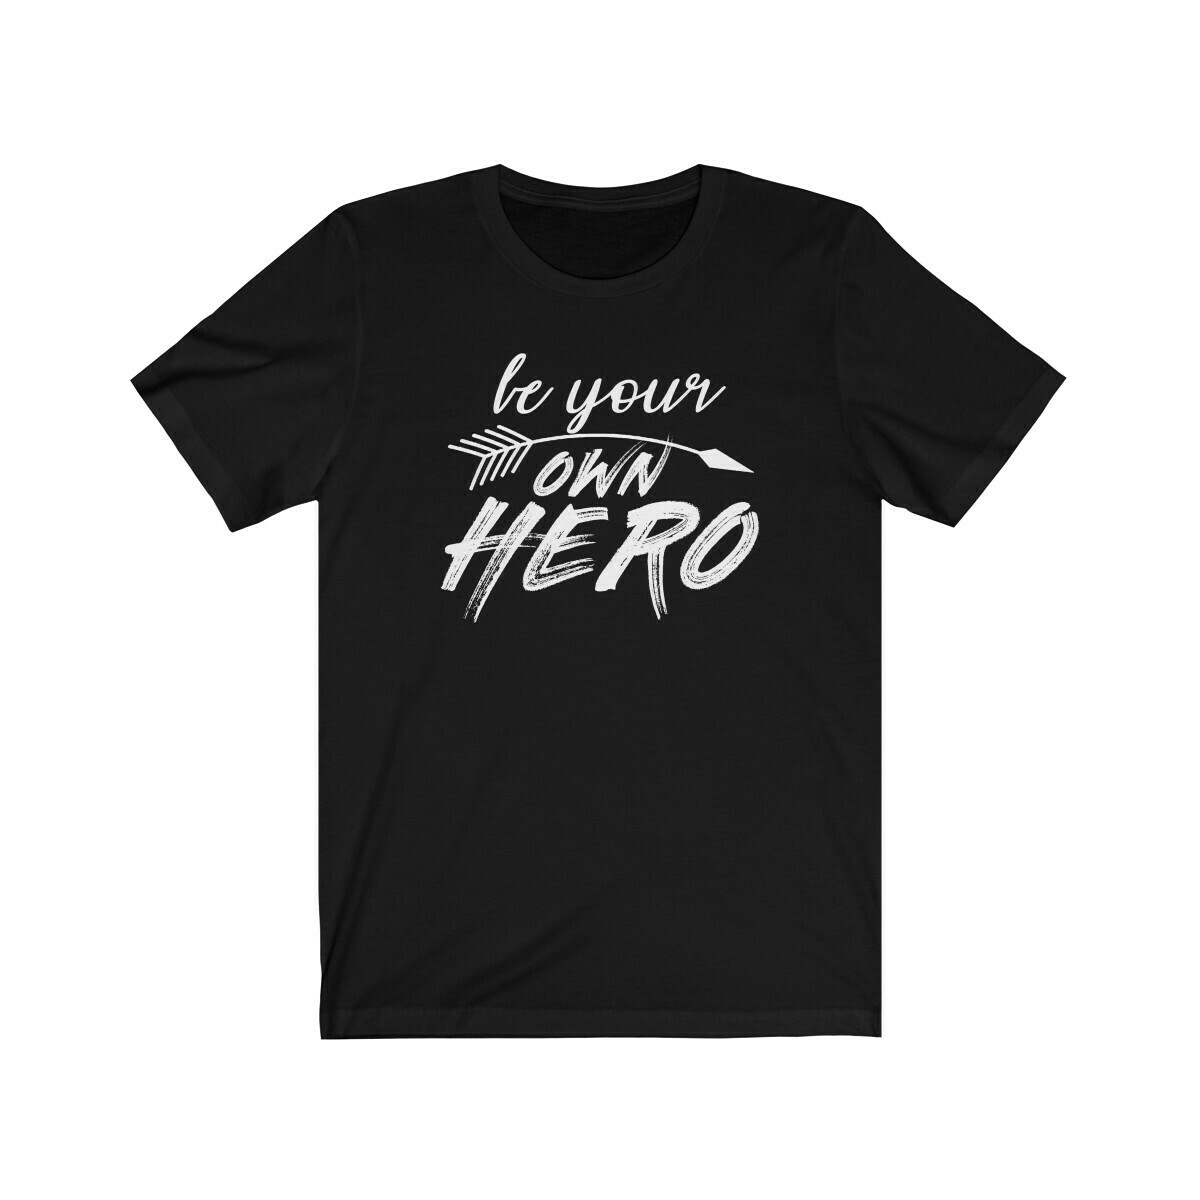 *Be Your Own Hero - 3001